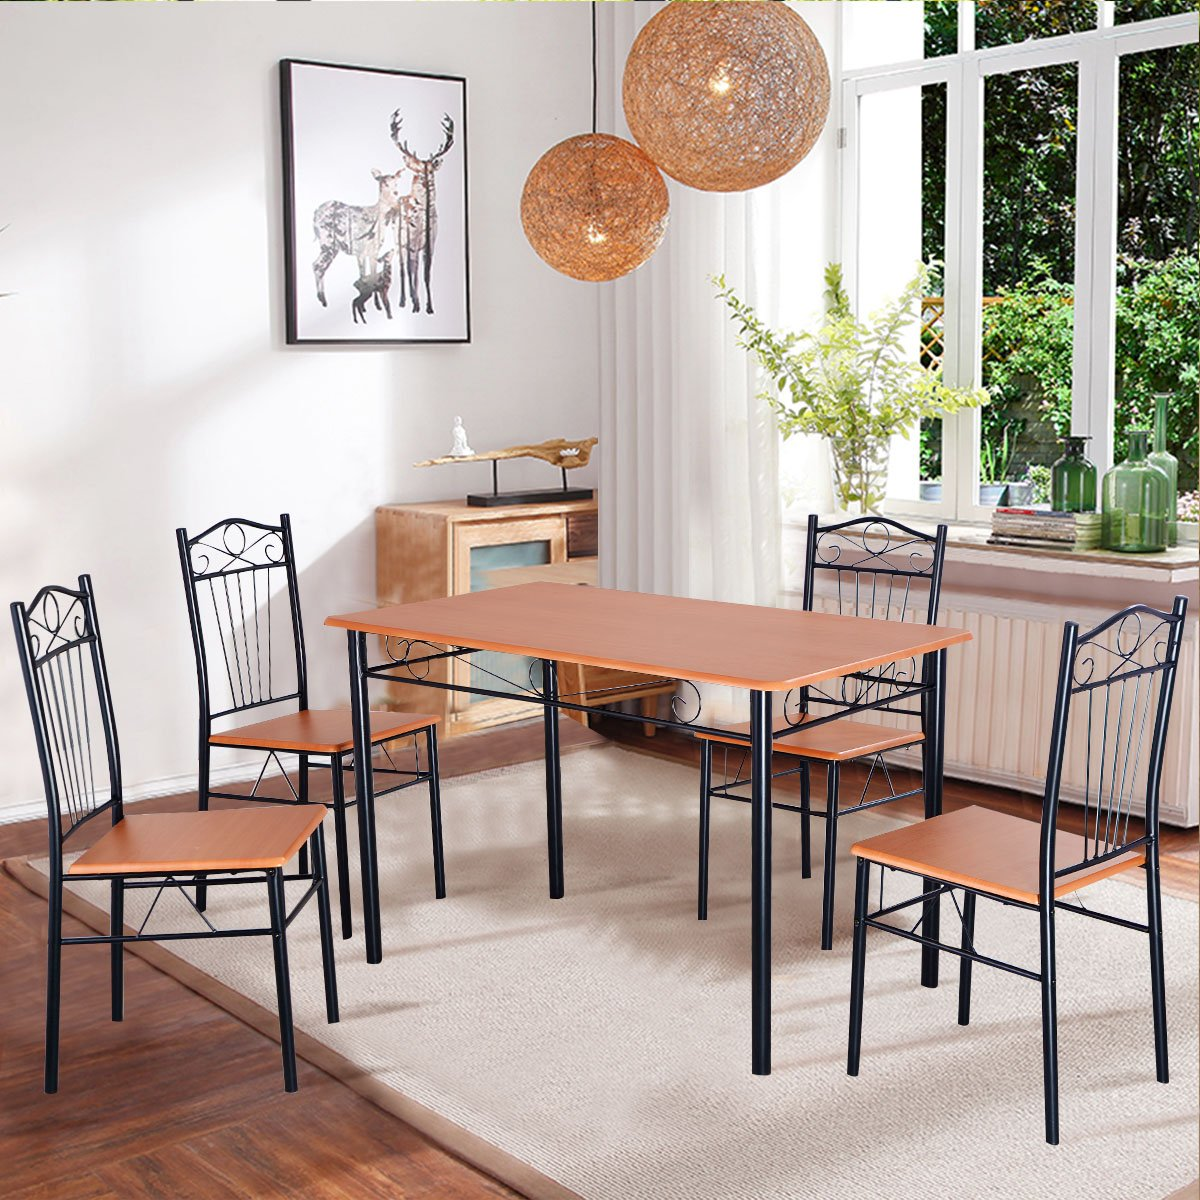 Amazon.com Tangkula Steel Frame Dining Set Table and Chairs Kitchen Modern Furniture Bistro Wood Home \u0026 Kitchen & Amazon.com: Tangkula Steel Frame Dining Set Table and Chairs Kitchen ...